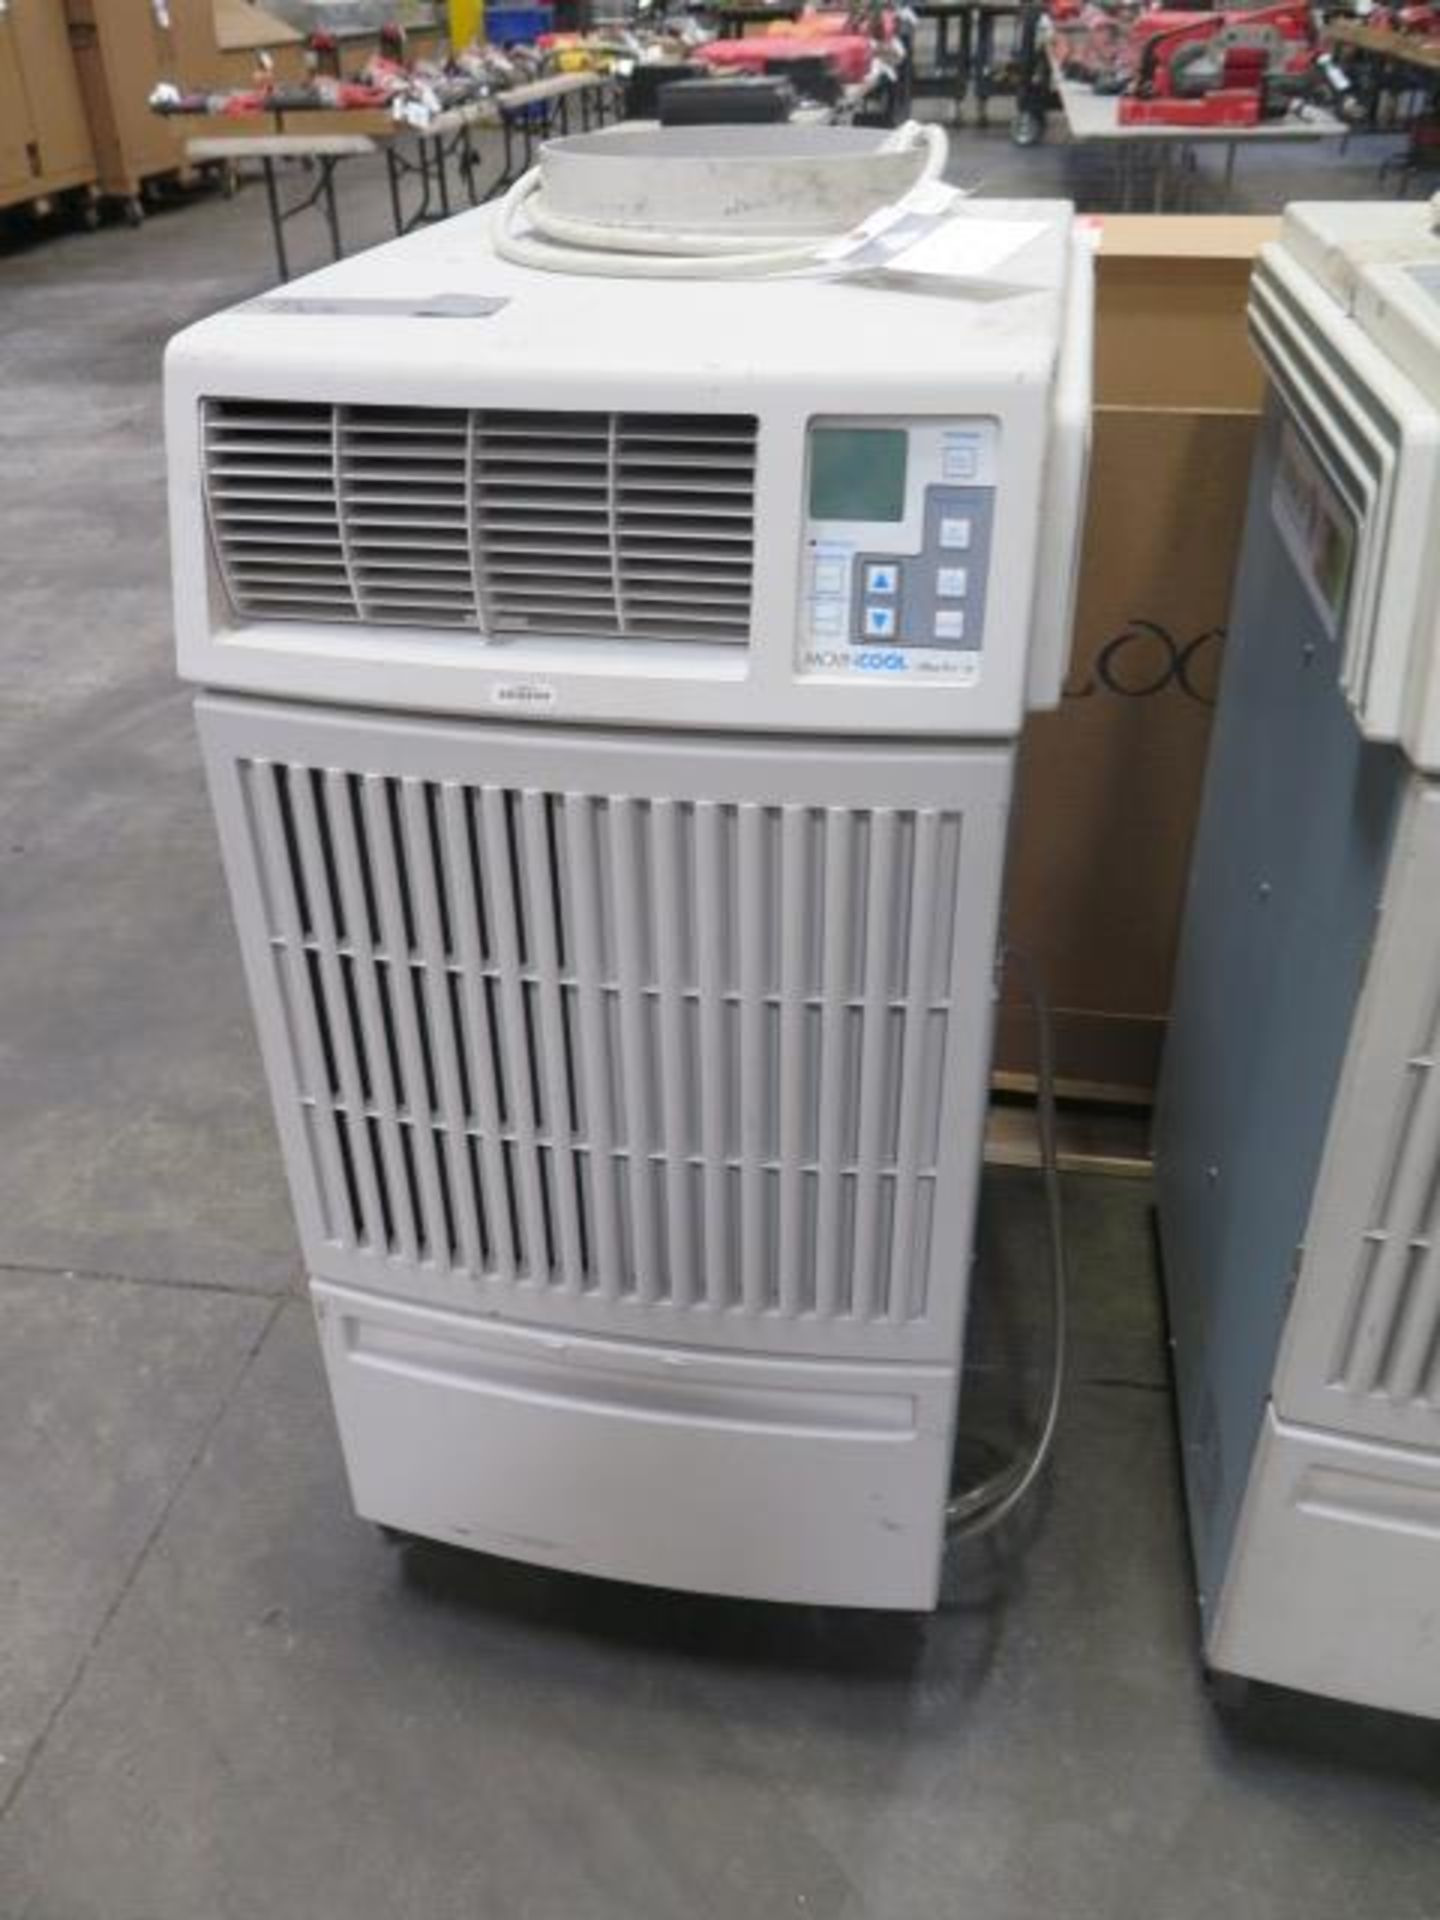 MovinCool Office Pro 18 Portable AC Unit (SOLD AS-IS - NO WARRANTY)